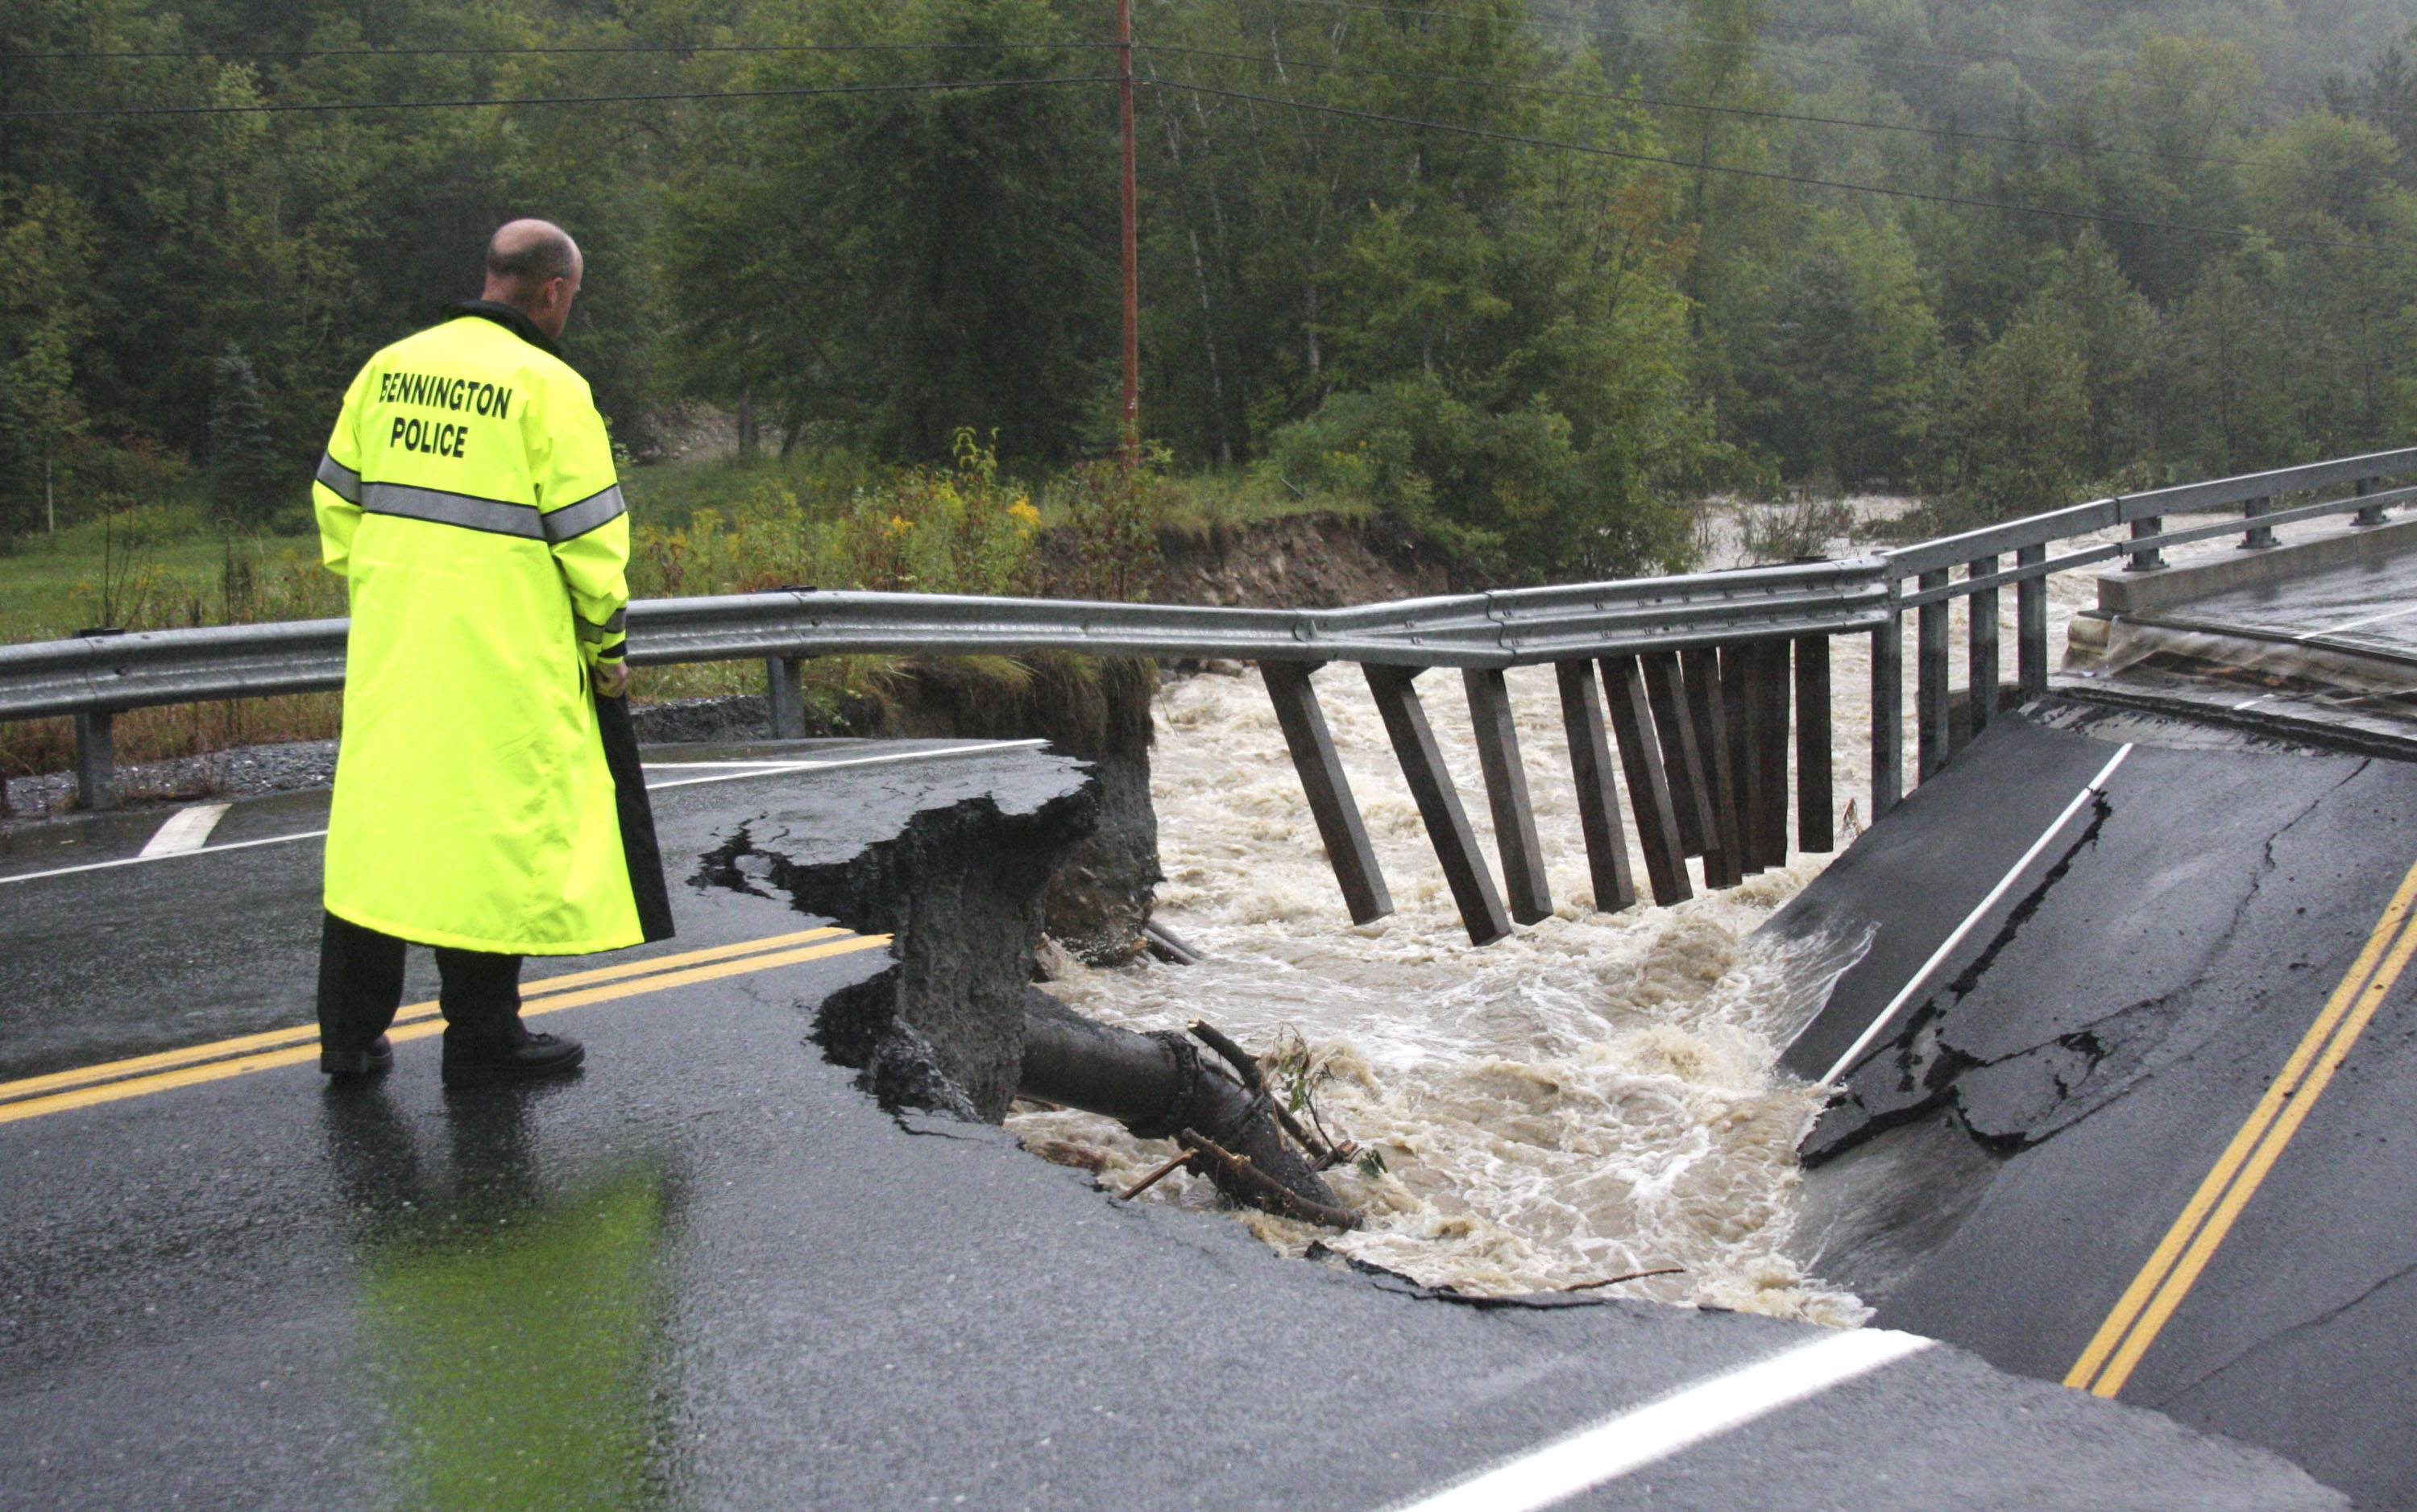 Bennington Police Chief Paul Doucette looks at a collapsed bridge on Route 9 in Woodford, Vt. on Sunday. The remnants of Hurricane Irene dumped torrential rains on Vermont on Sunday, flooding rivers and closing roads from Massachusetts to the Canadian border.